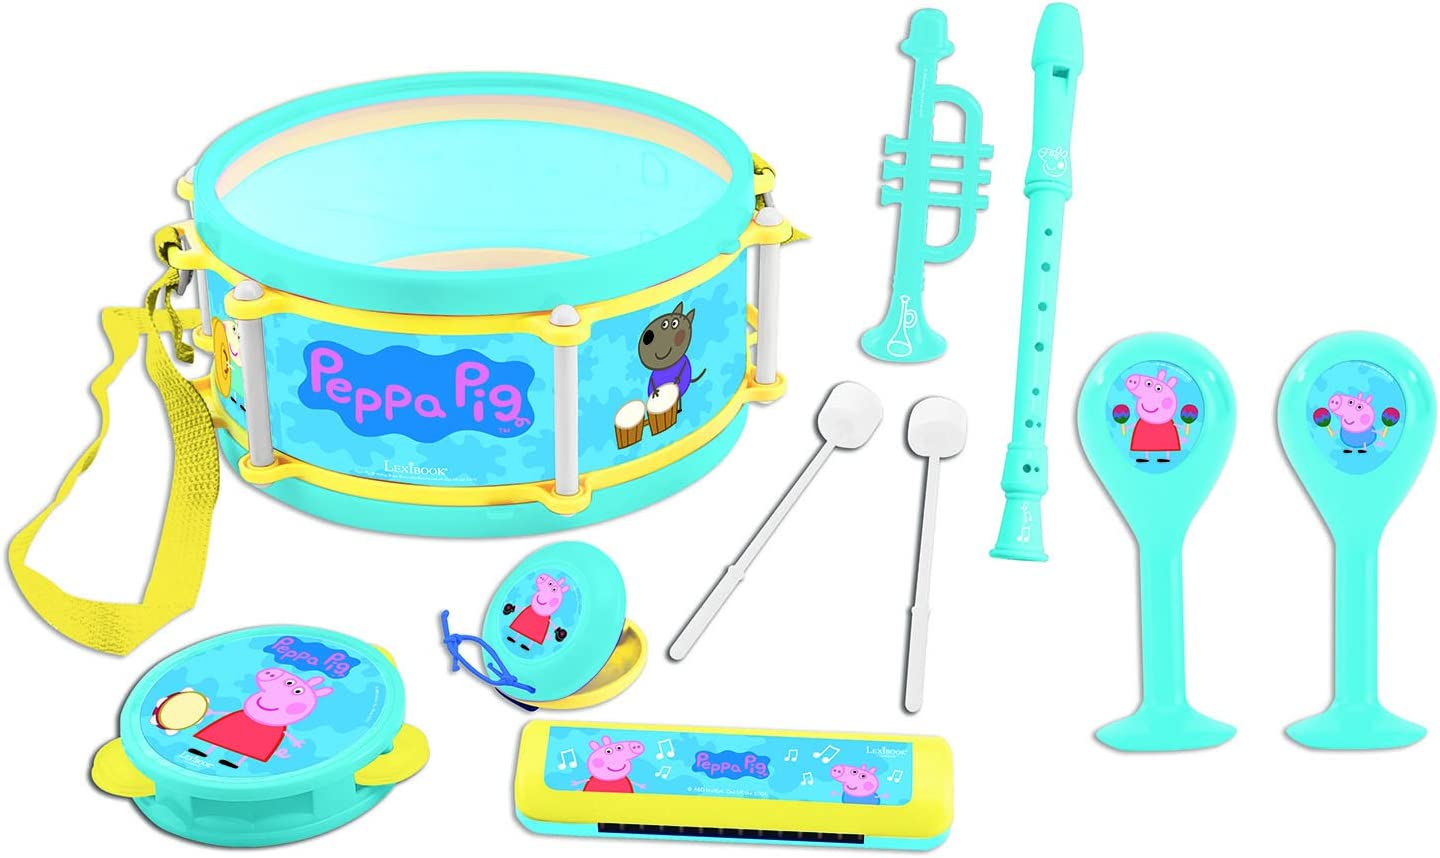 Peppa Pig- Set Musical 7 Instrumentos En 1, Color Azul/Amarillo ...